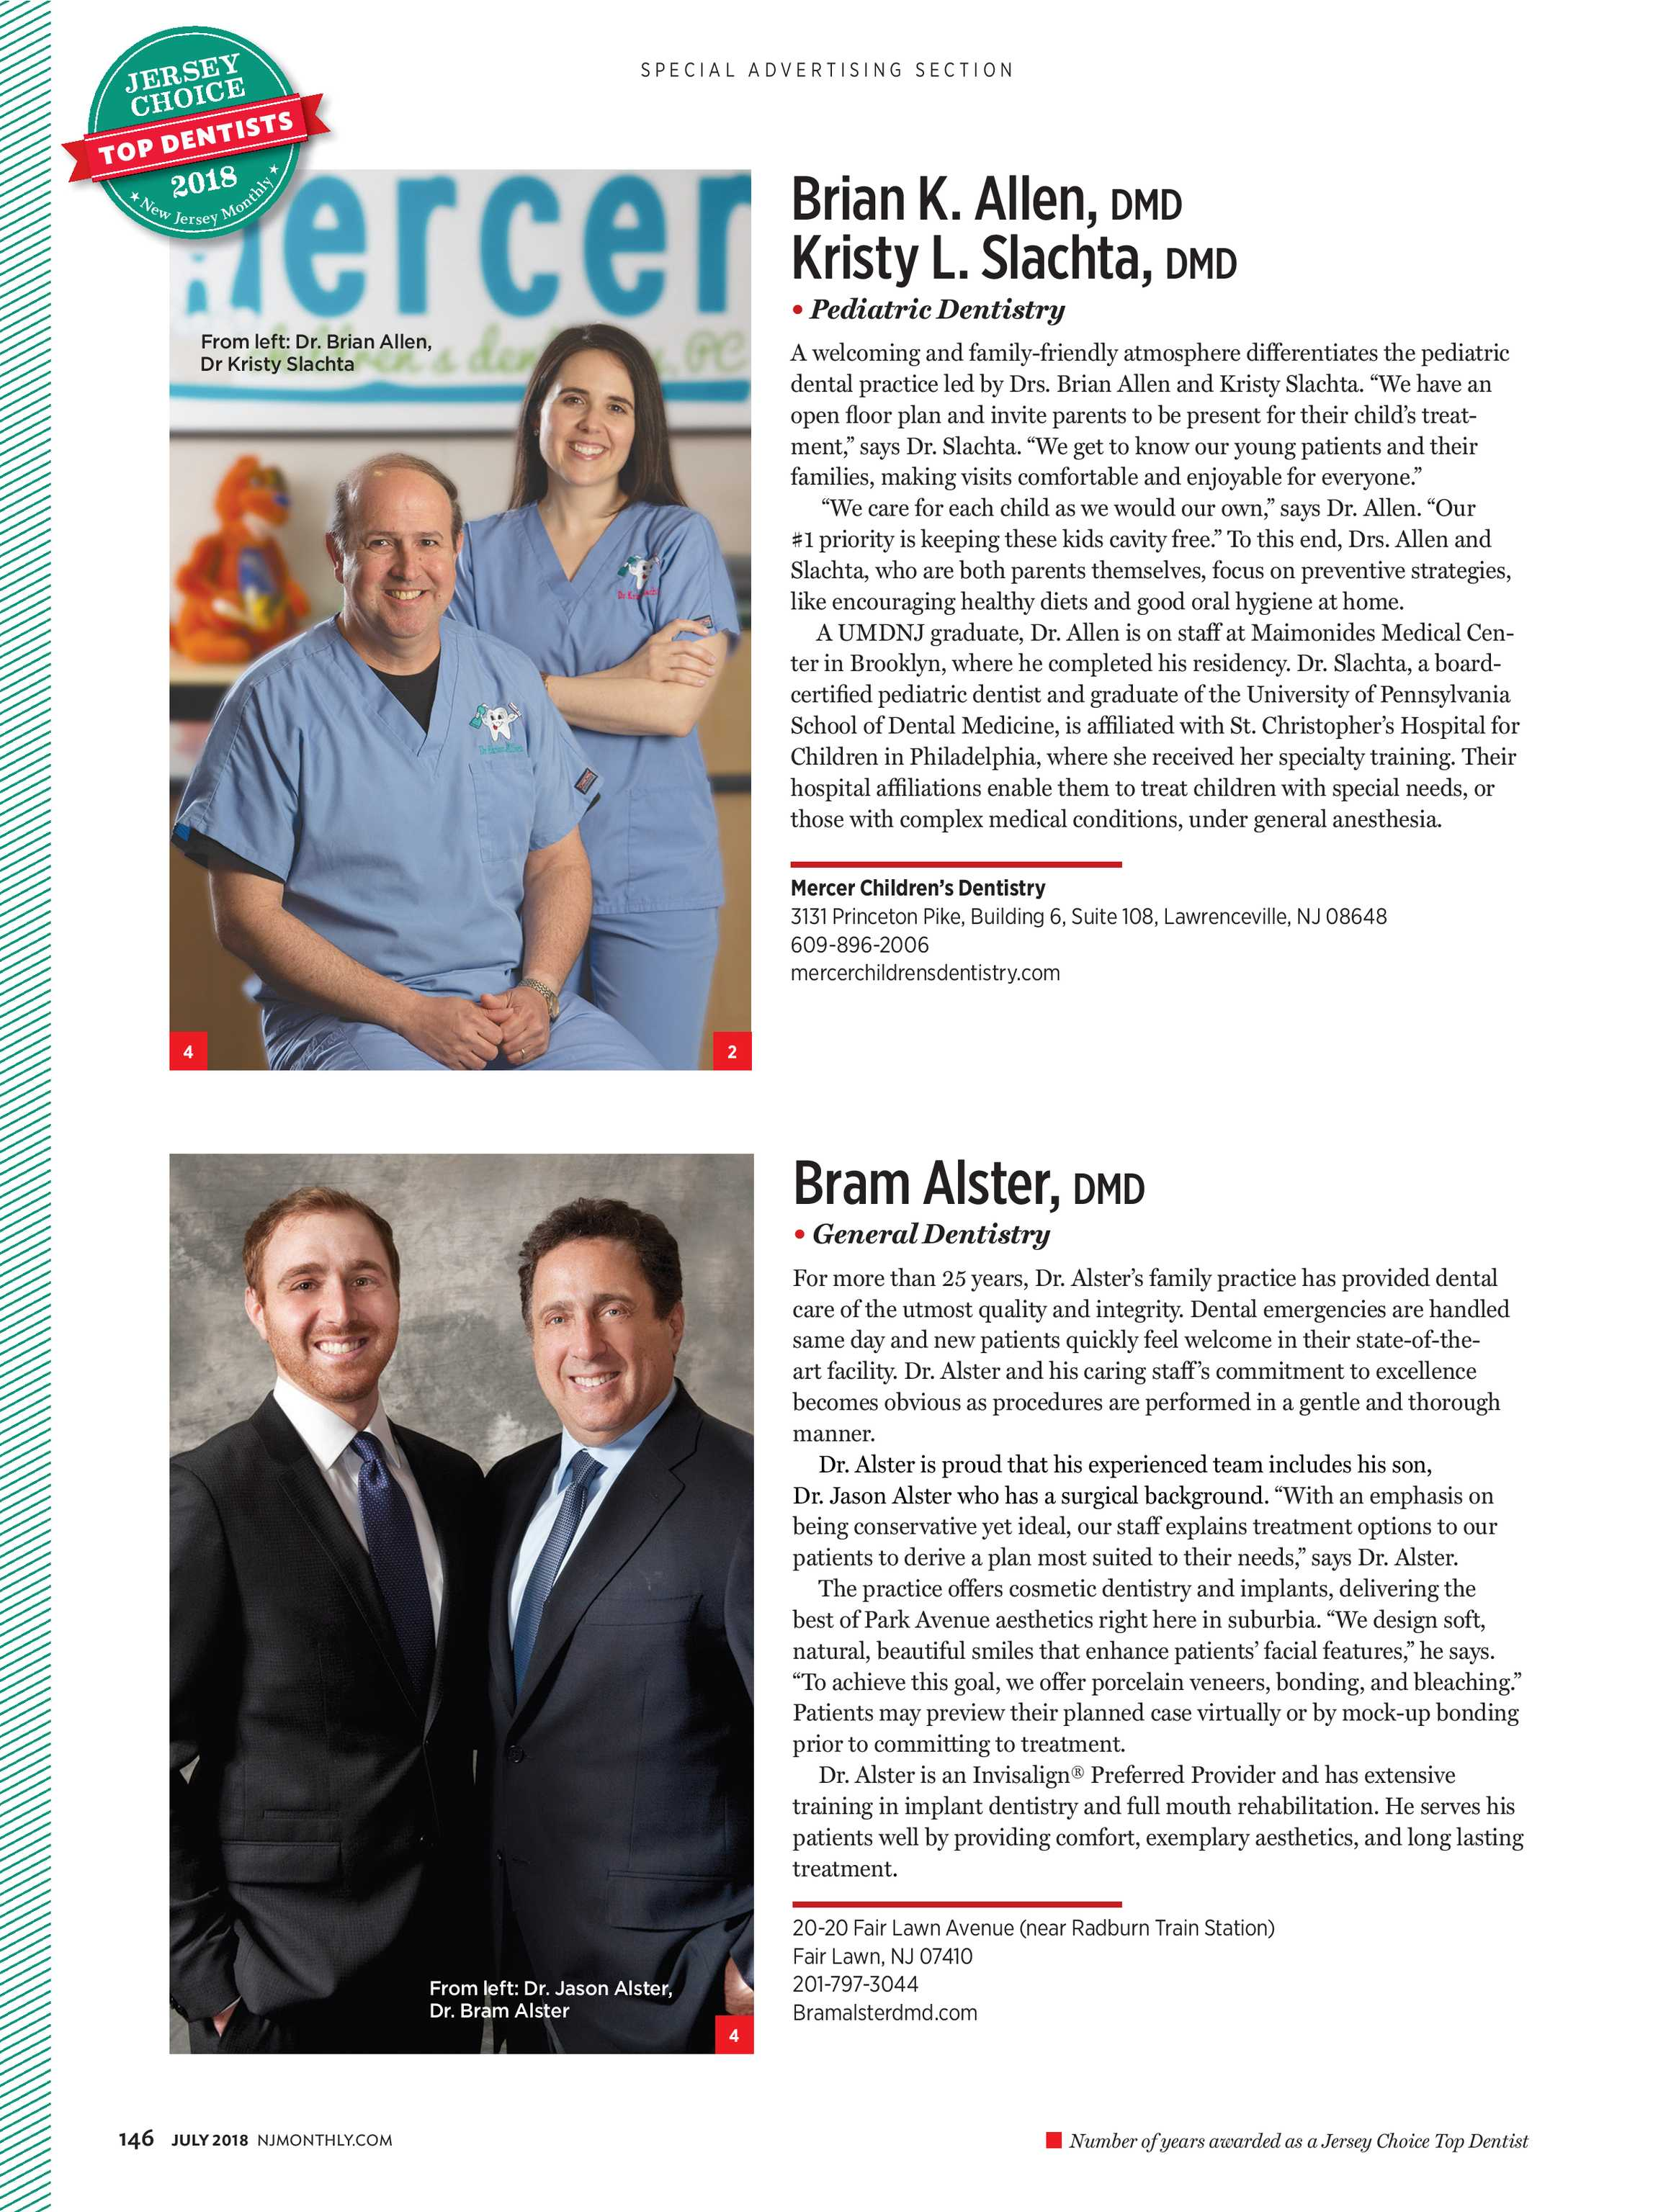 Nj Monthly July 2018 Page 146